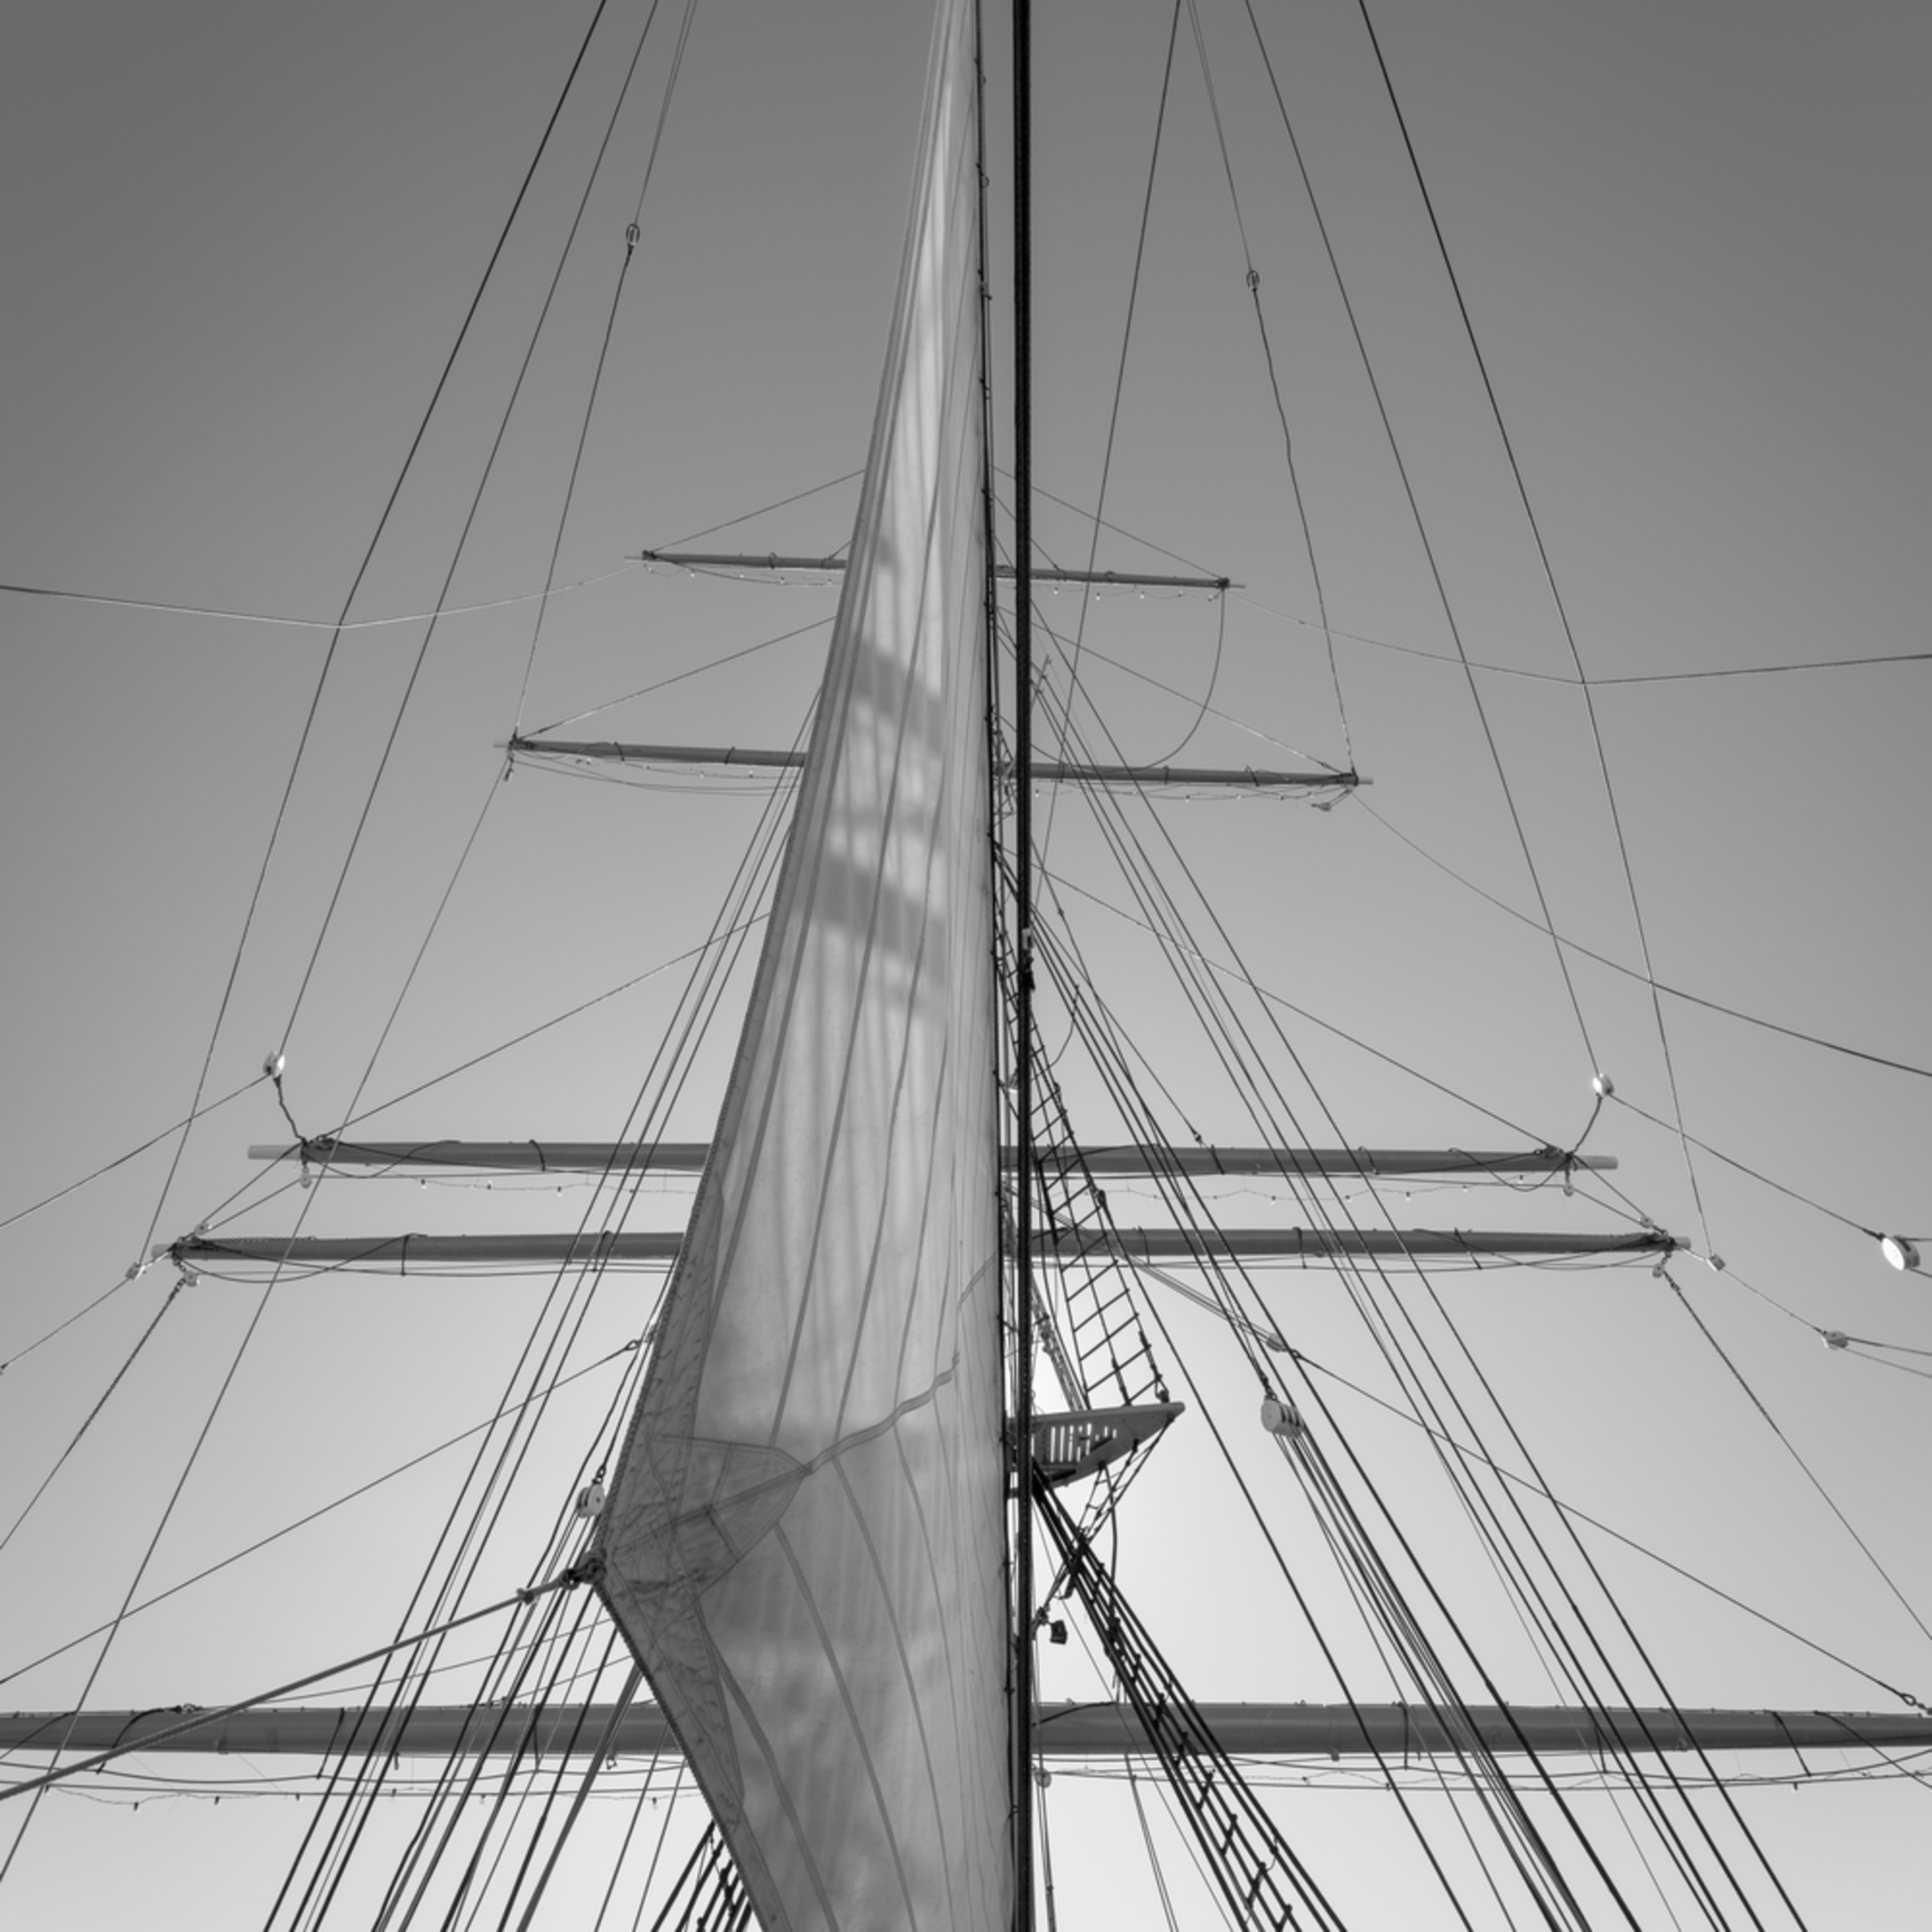 Staysail   star of india 1863 foocxc